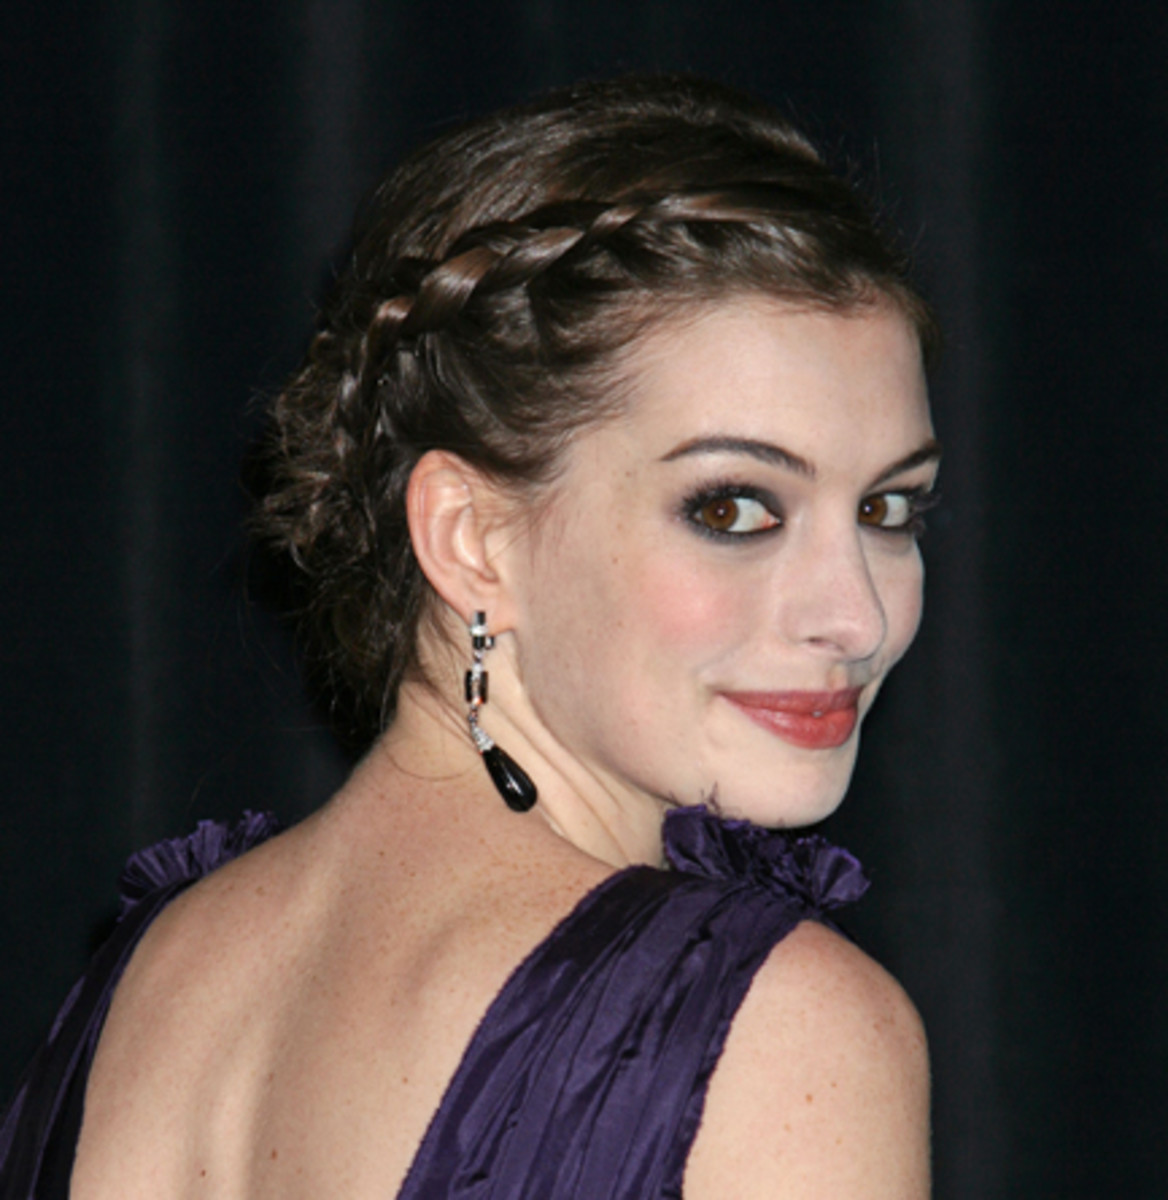 Anne Hathaway - 2013 Braided Hairstyles - Fun Braids and Braided Updo Hair Styles